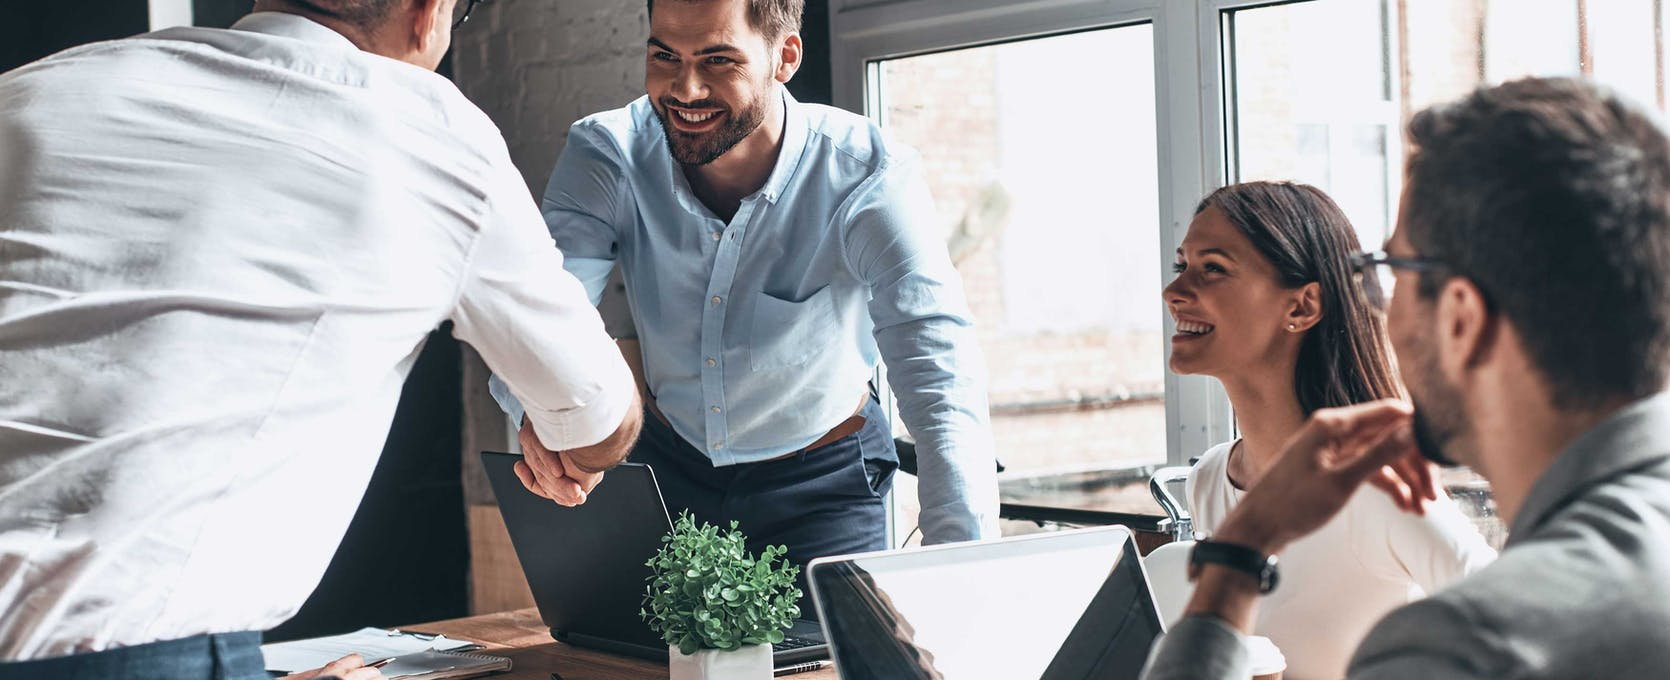 Business person is welcomed to a meeting with a handshake